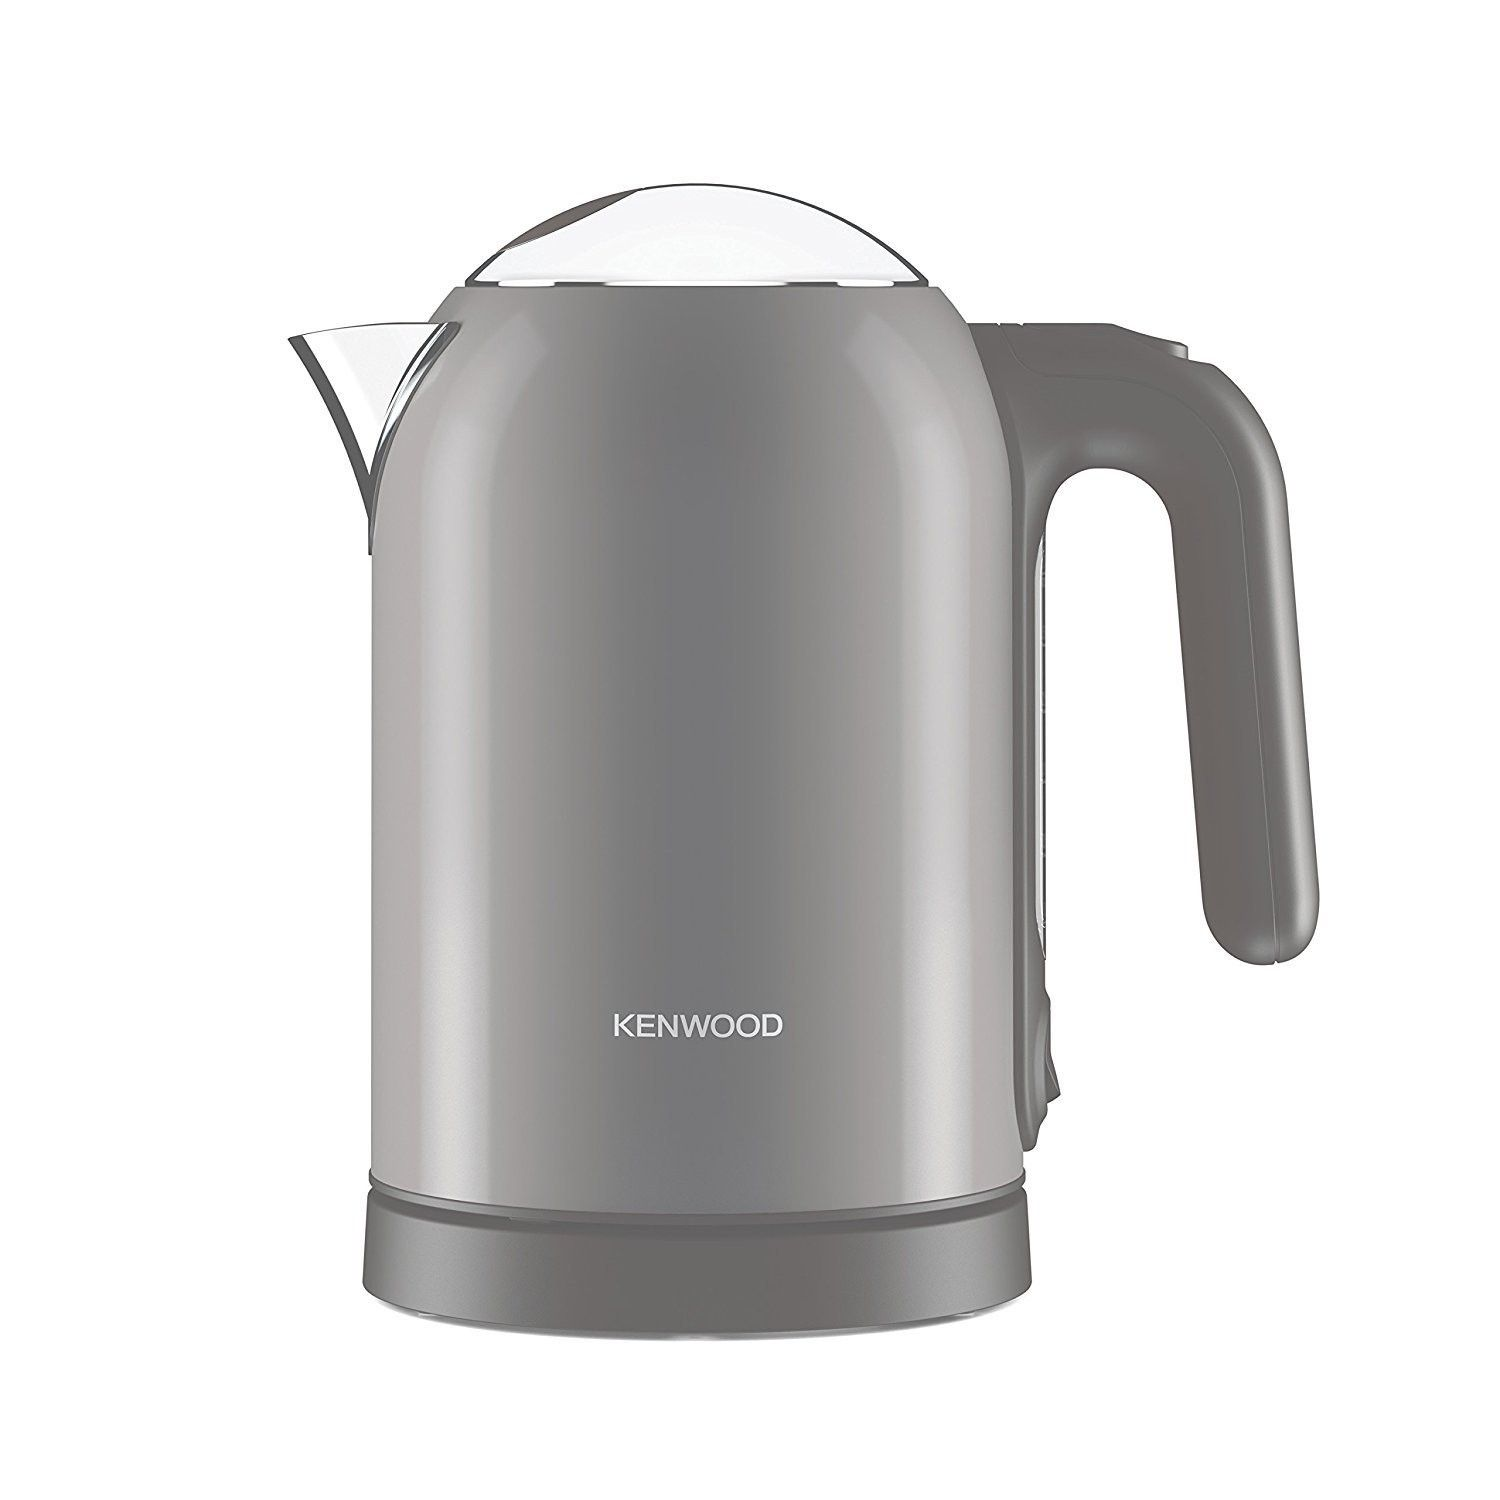 Kenwood Zjm180gy Scene Kettle 16 L Grey Kitchen Appliances Blender Bl335